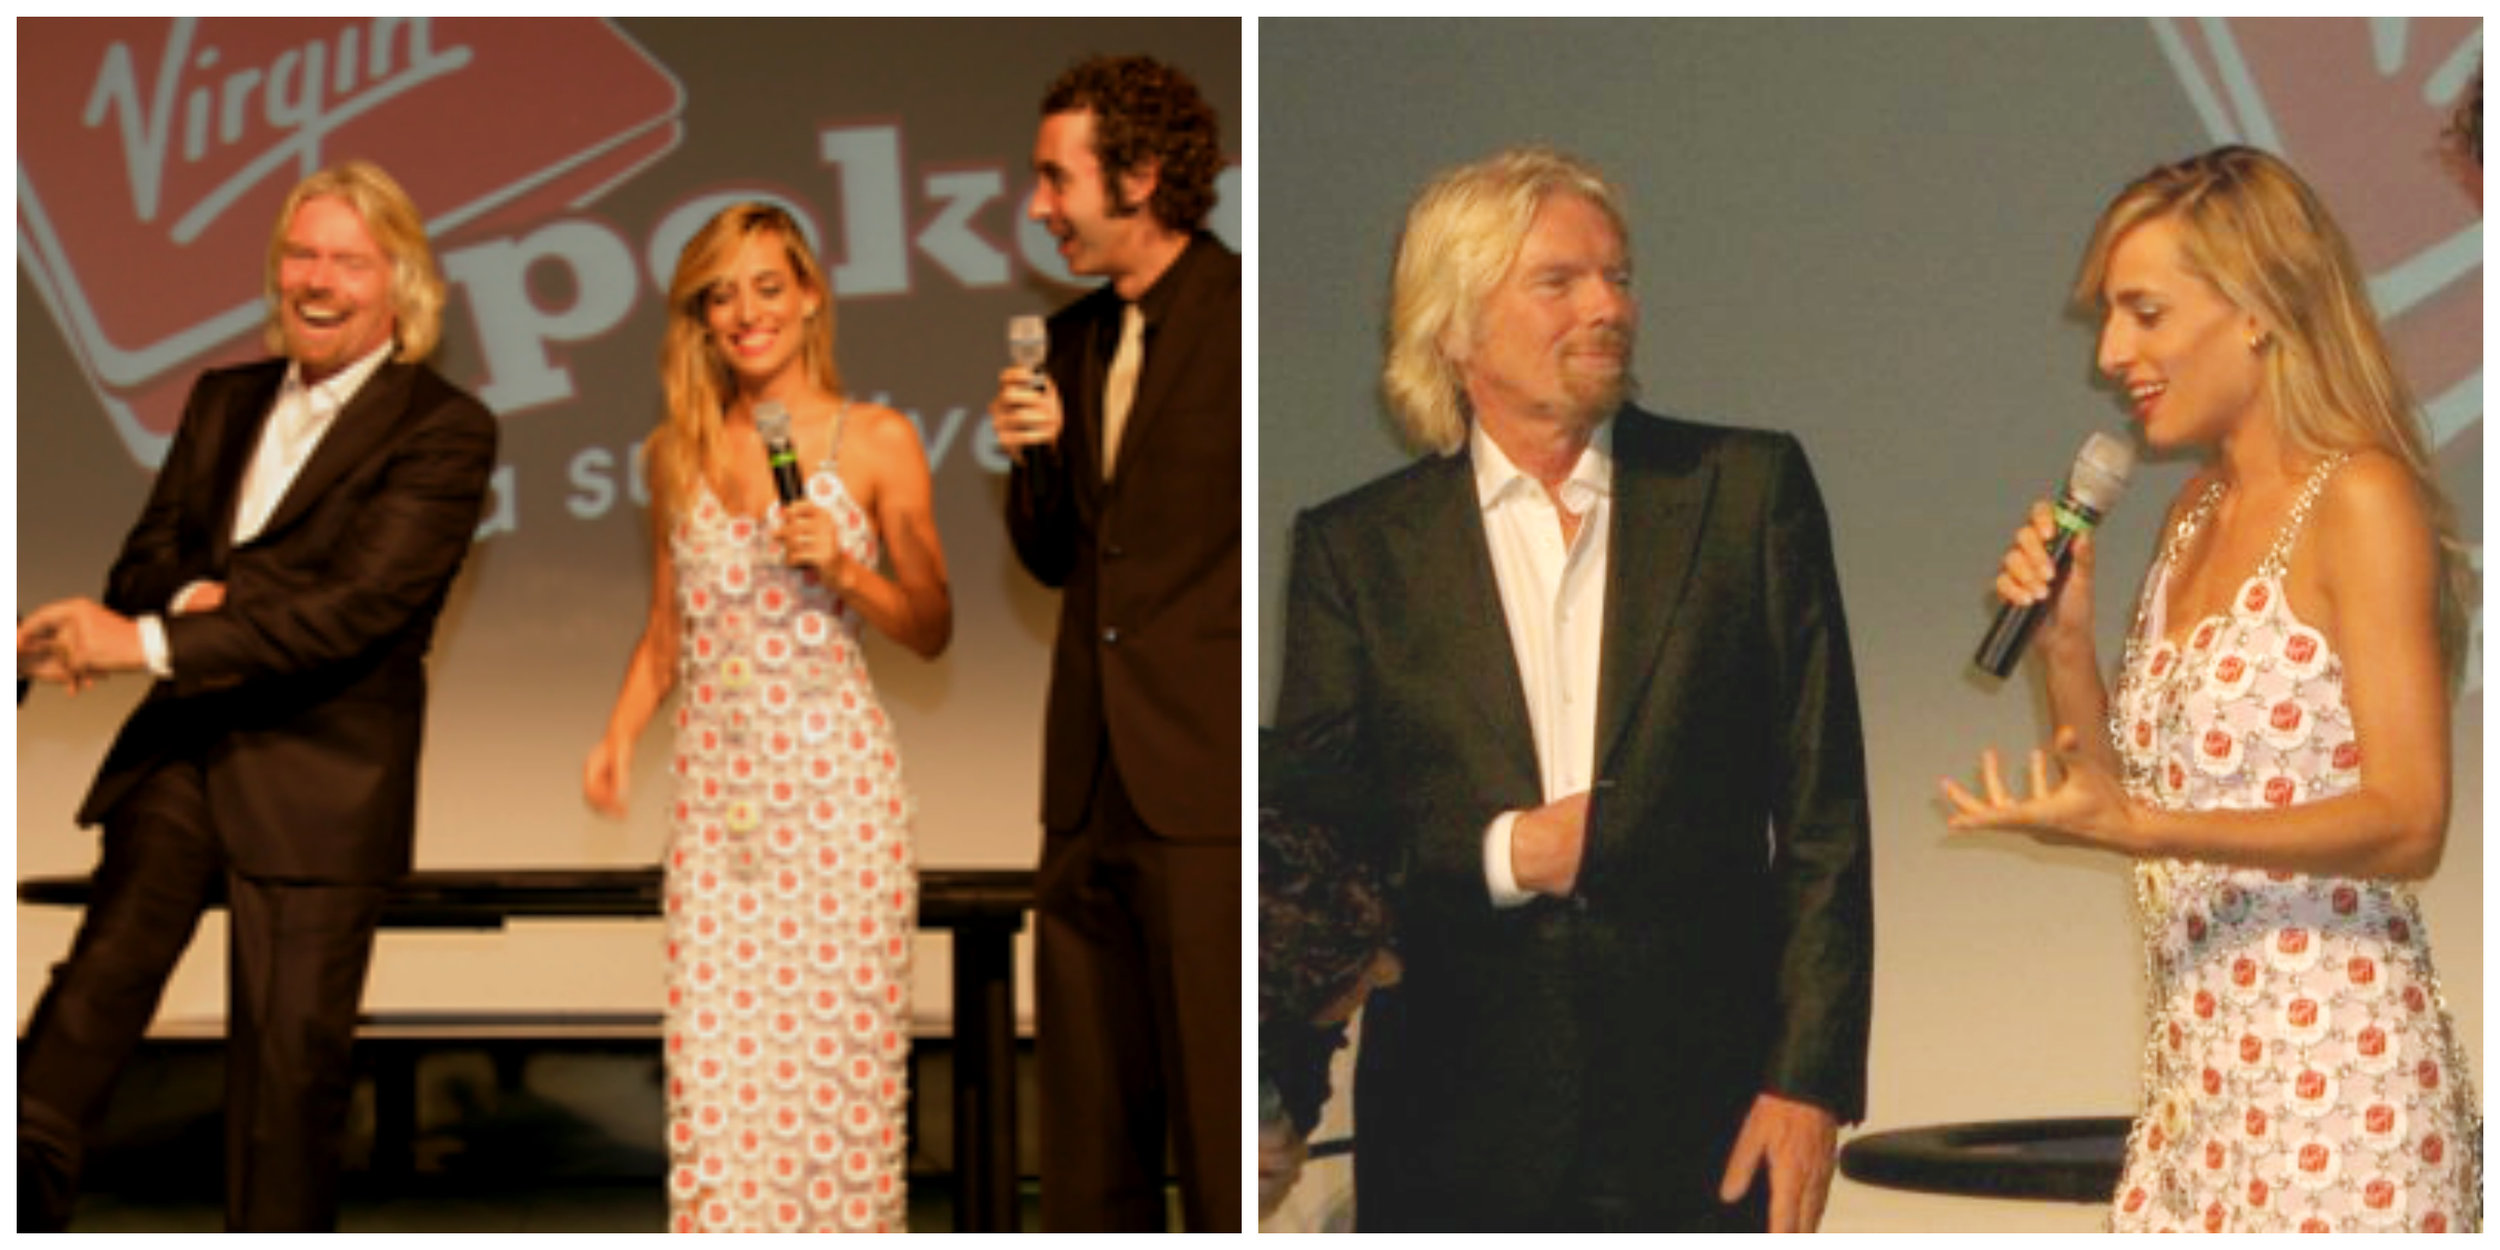 Jessica hosts a private charity event for Sir Richard Branson and the Virgin Co.